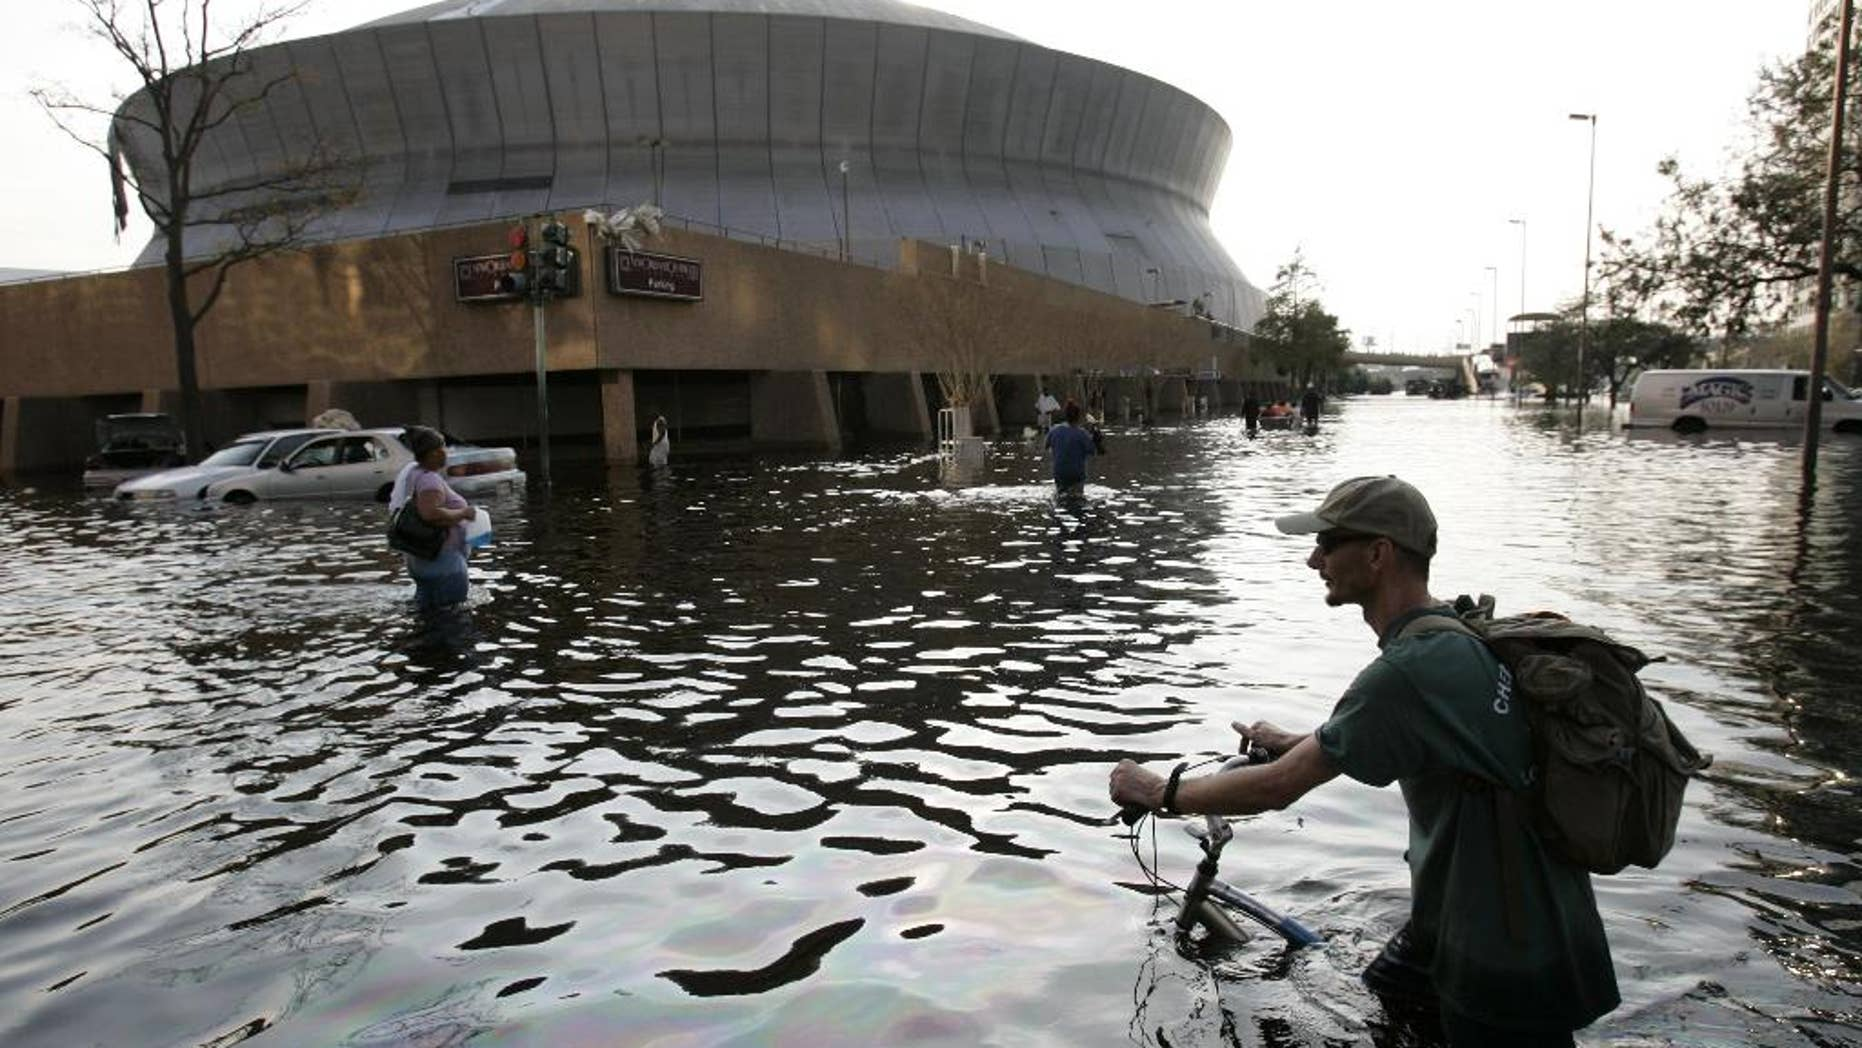 FILE - This Aug, 31, 2005 file photo shows a man pushing his bicycle through flood waters near the Superdome in  New Orleans after Hurricane Katrina left much of the city under water. A new but controversial study asks if an end is coming to the busy Atlantic hurricane seasons of recent decades. The Atlantic looks like it is entering in to a new quieter cycle of storm activity, like in the 1970s and 1980s, two prominent hurricane researchers wrote Monday in the journal Nature Geoscience.(AP Photo/Eric Gay, File)